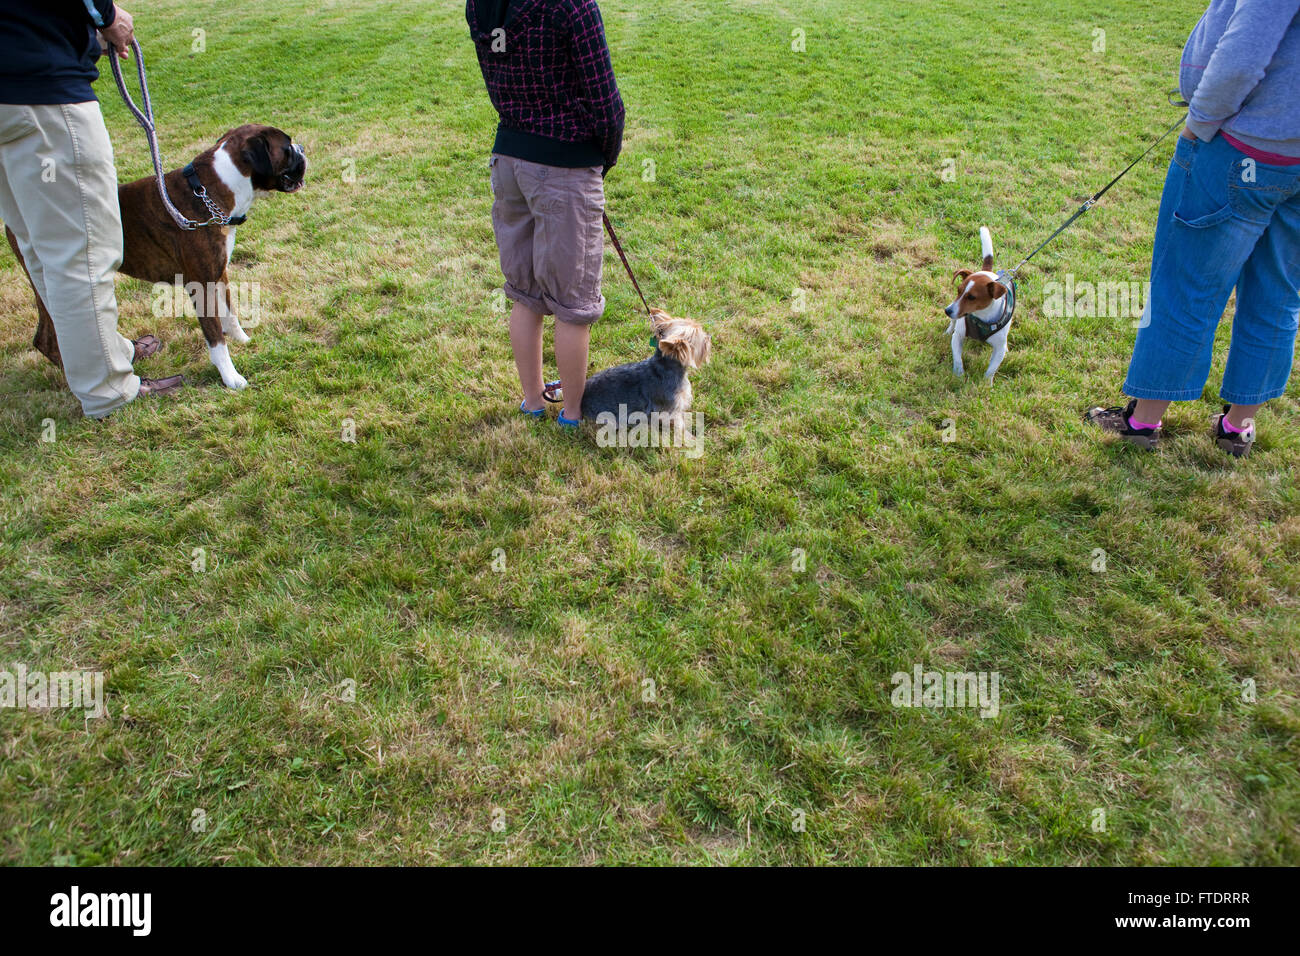 A line up of dogs waiting for the results of a local dog show as they sit in the grass in the British countryside. - Stock Image